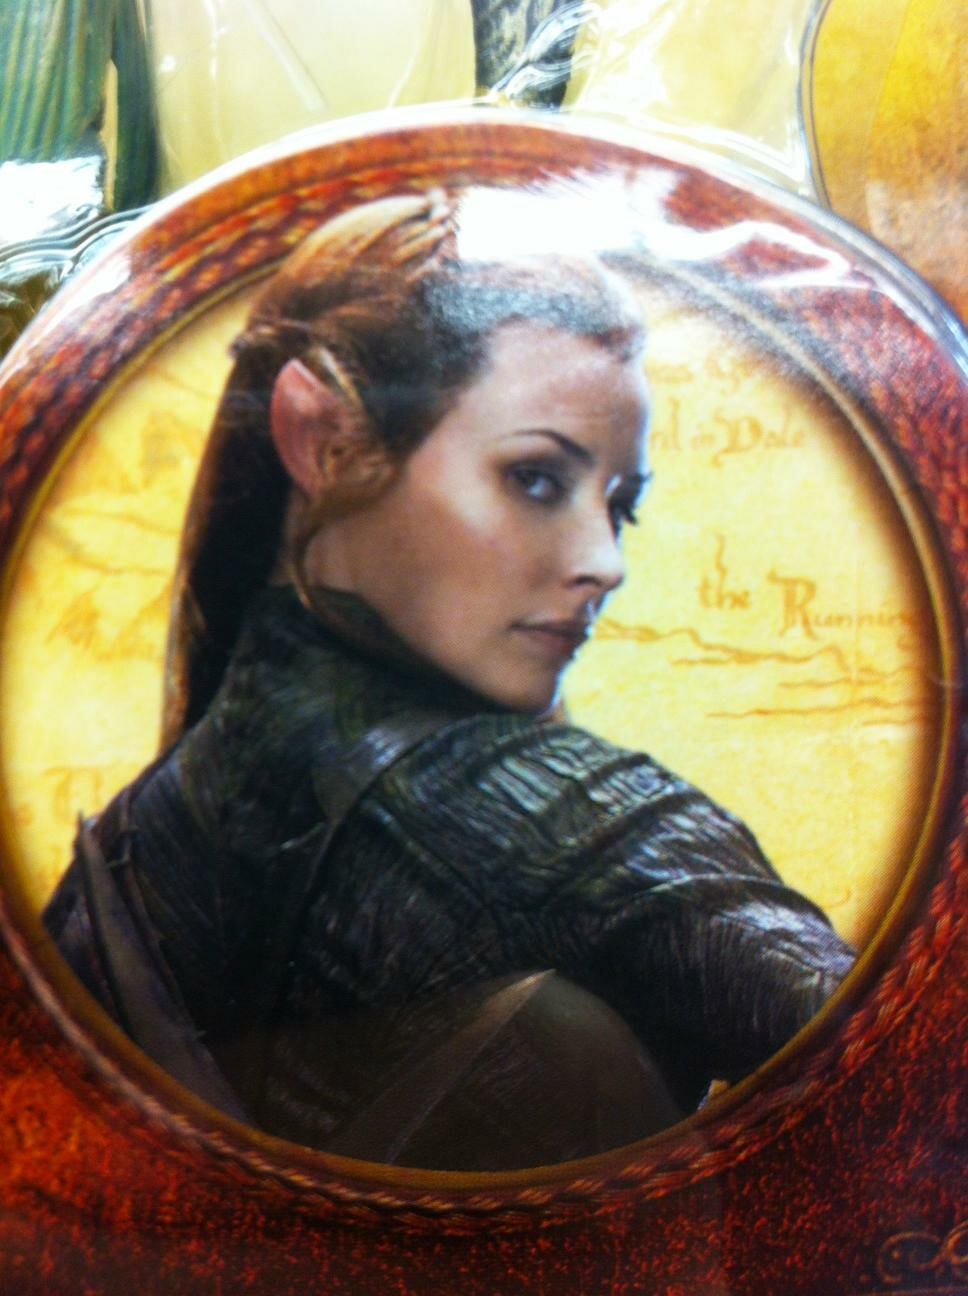 first image evangeline lilly hobbit